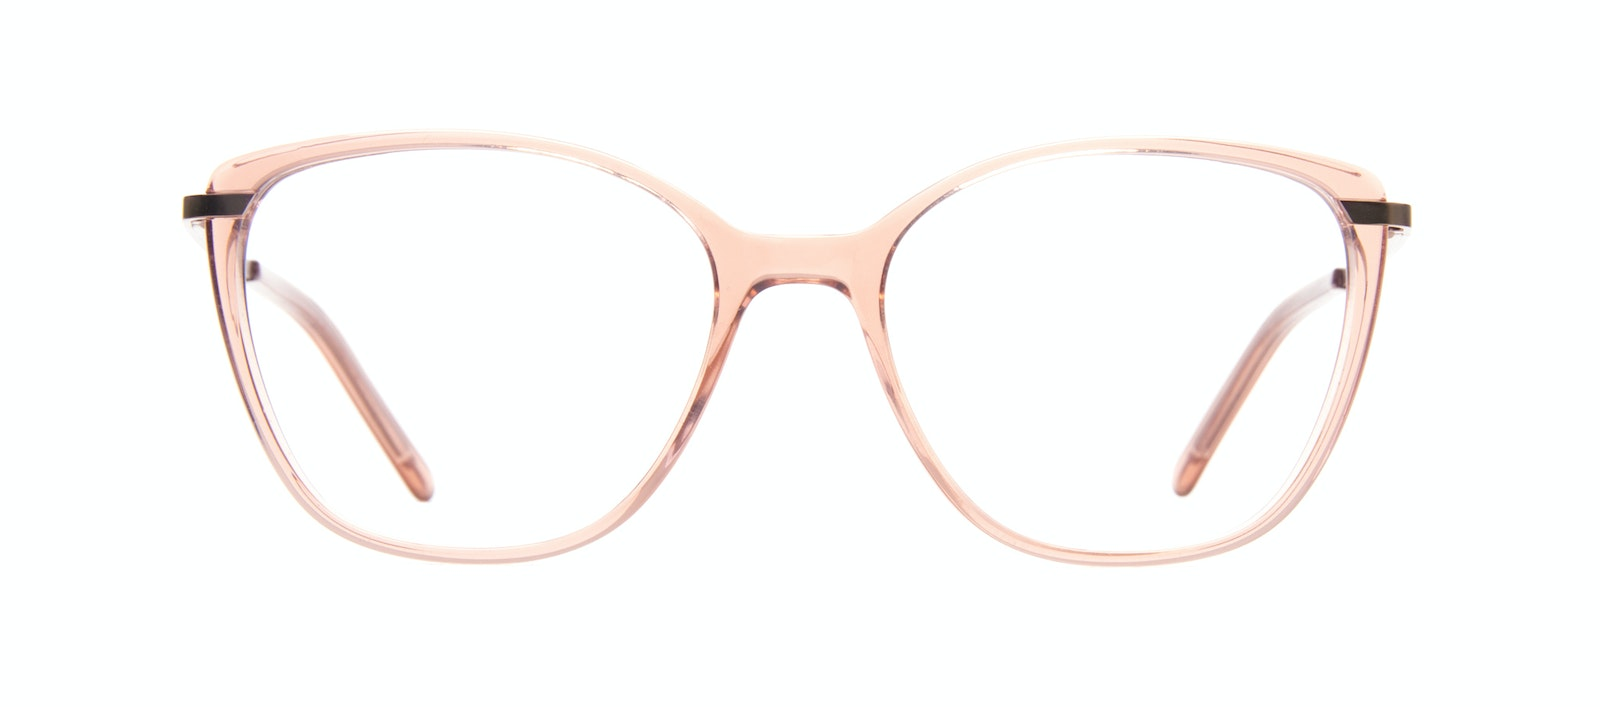 Affordable Fashion Glasses Rectangle Square Eyeglasses Women Illusion M Rose Front